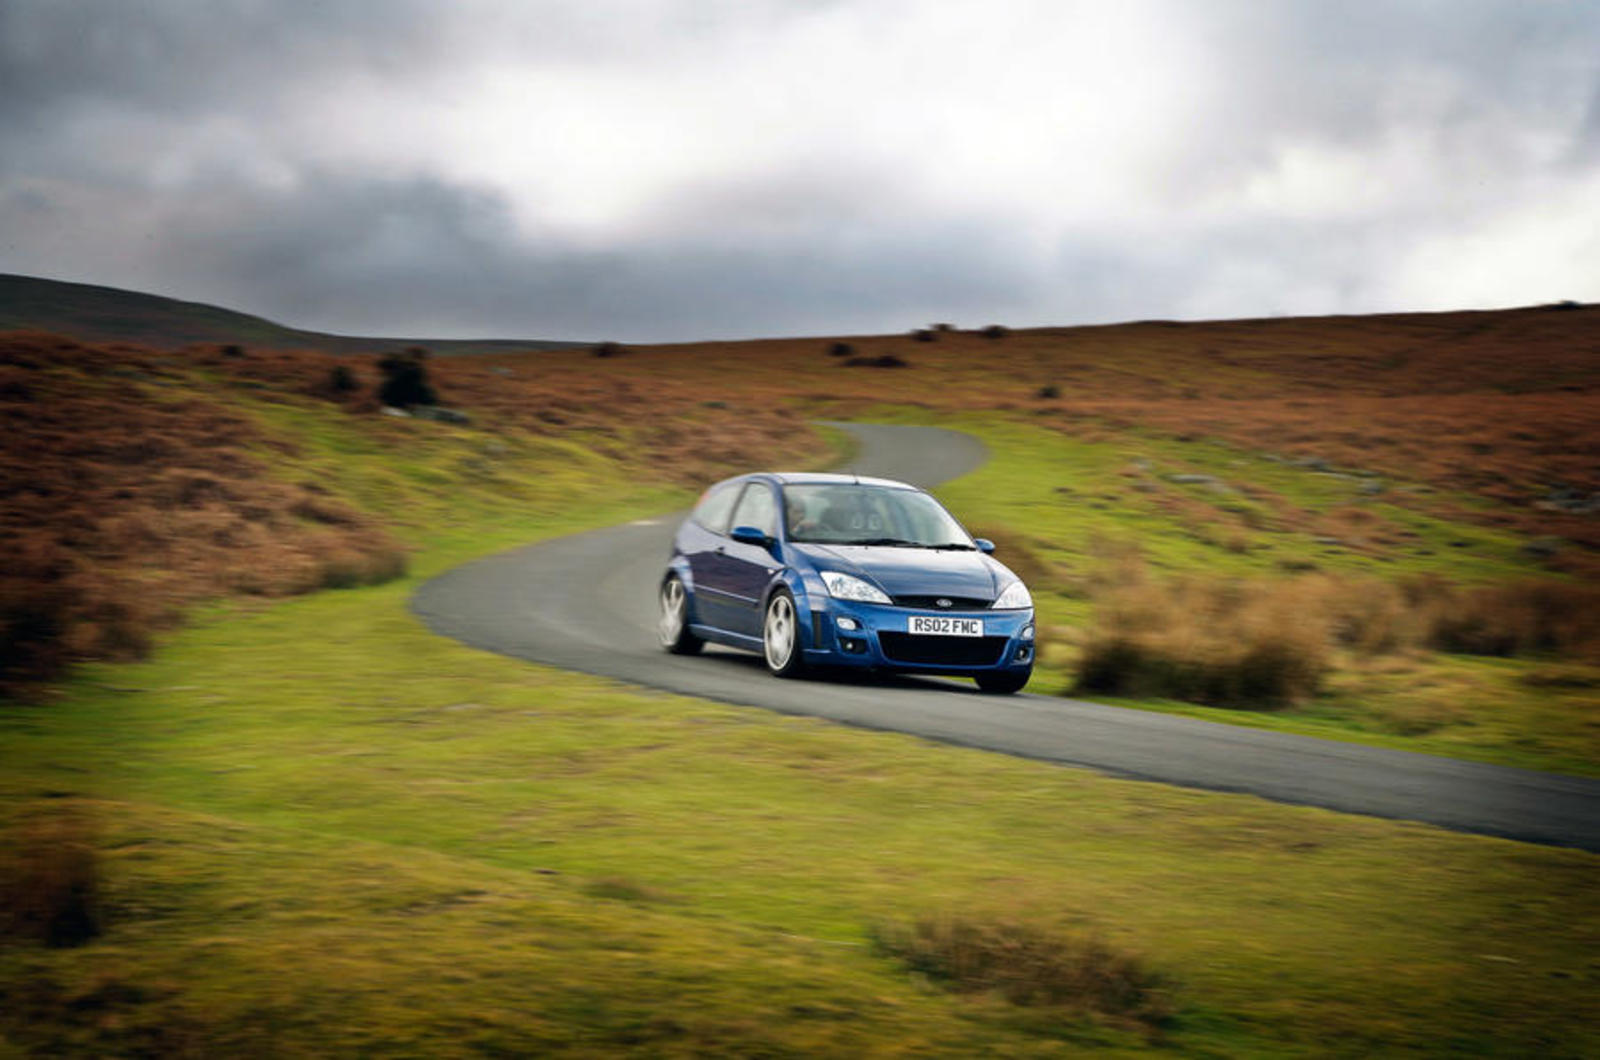 44 Ford Focus Rs Mk1 Tracking Front